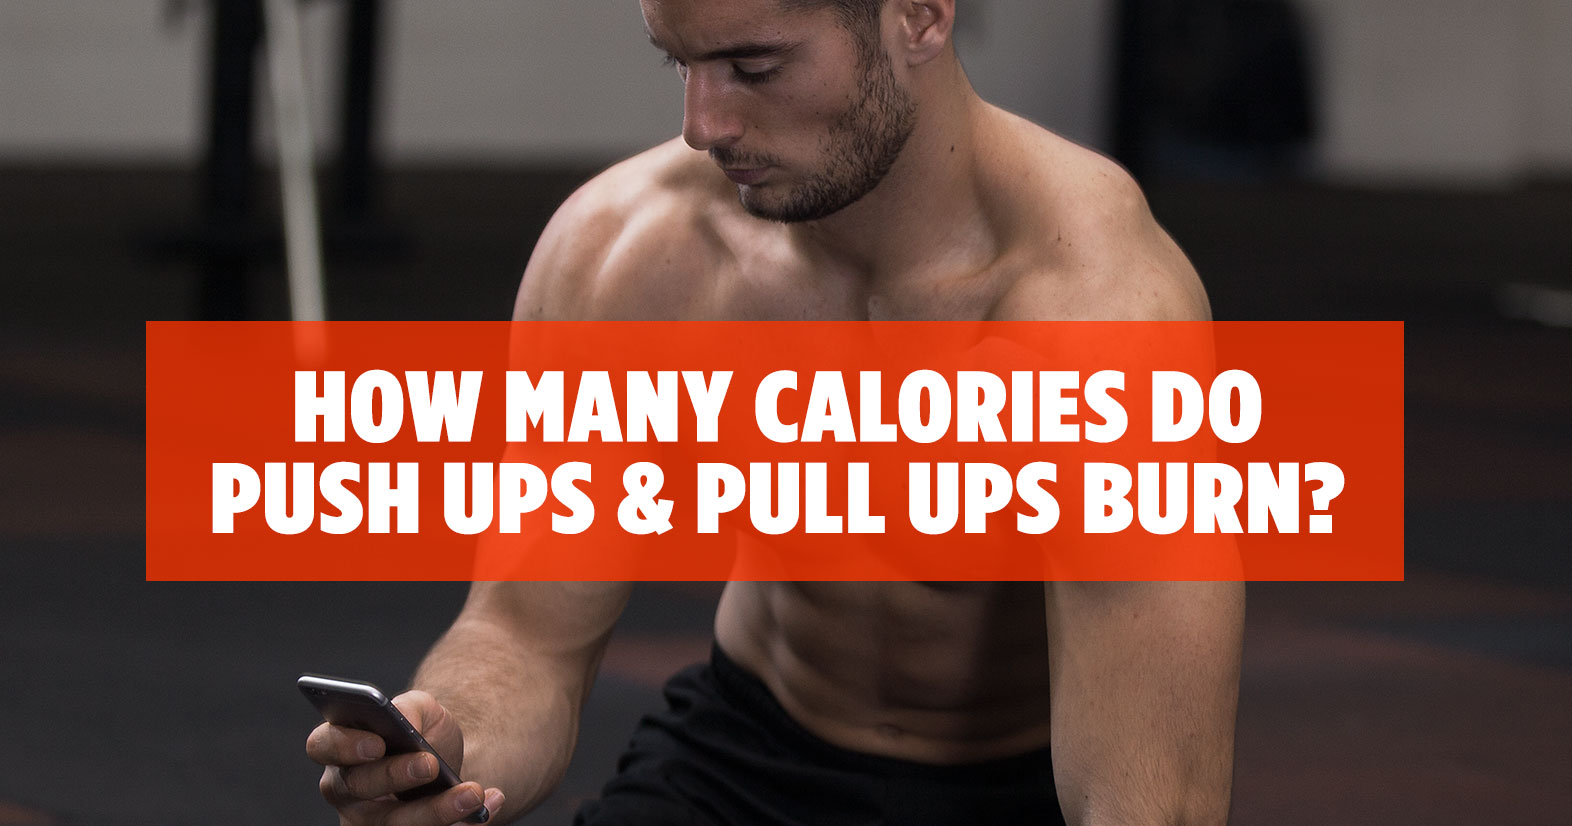 How many calories push ups and pull ups burn.